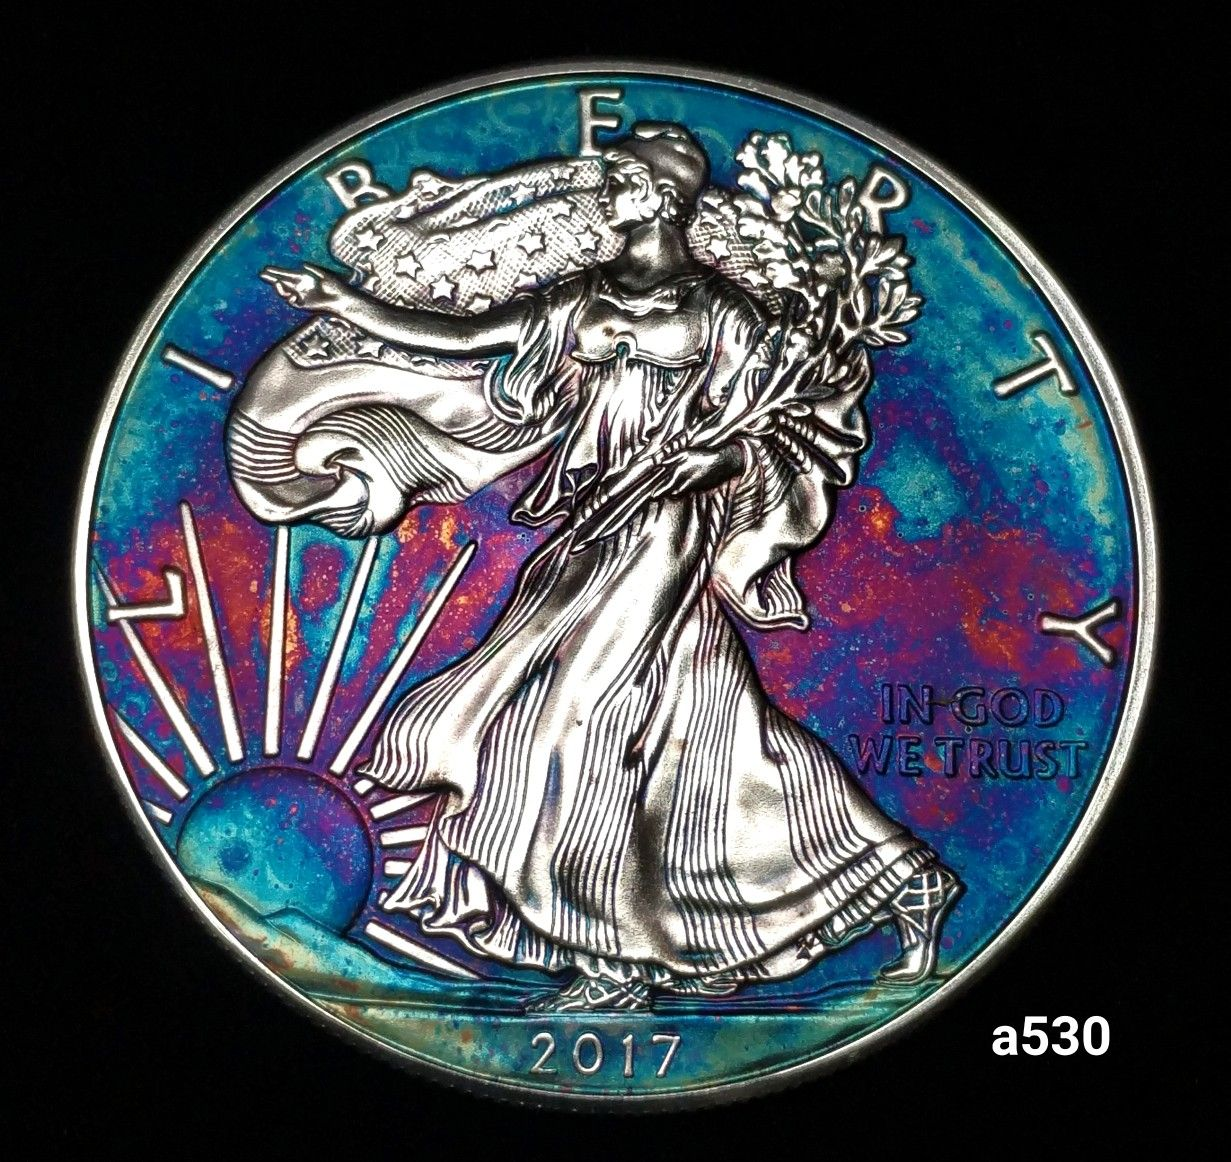 Silver American Eagle Coin 1 Troy Ounce Fine Silver High Grade Artistic Rainbow Toning Id A530 Silver Eagle Coins Eagle Coin American Silver Eagle